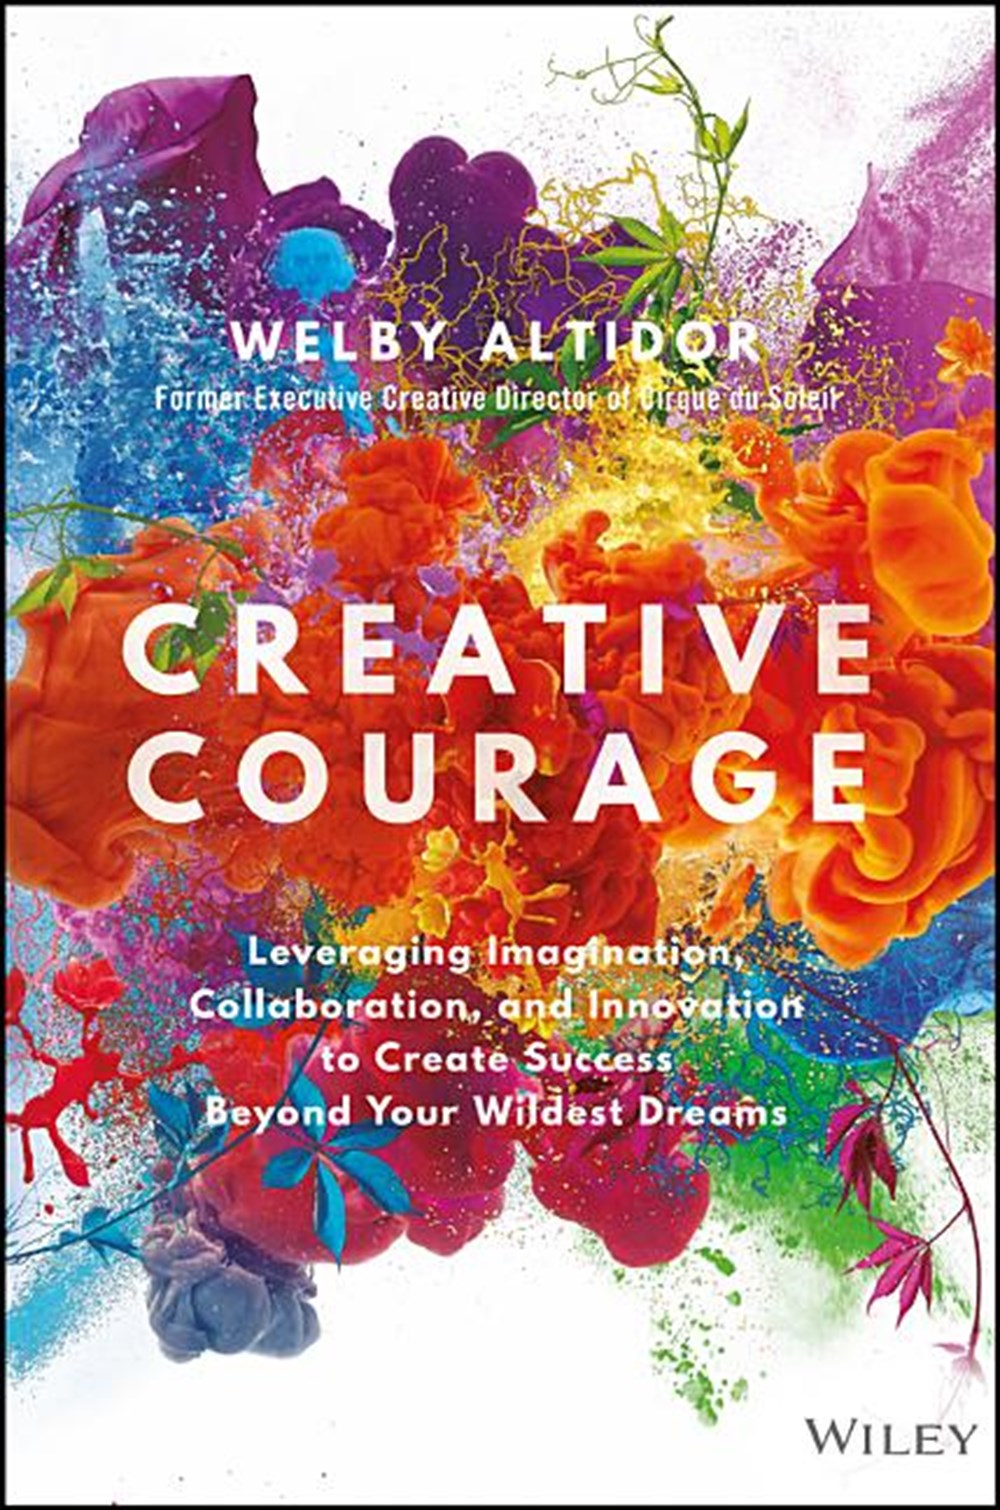 Creative Courage Leveraging Imagination, Collaboration, and Innovation to Create Success Beyond Your